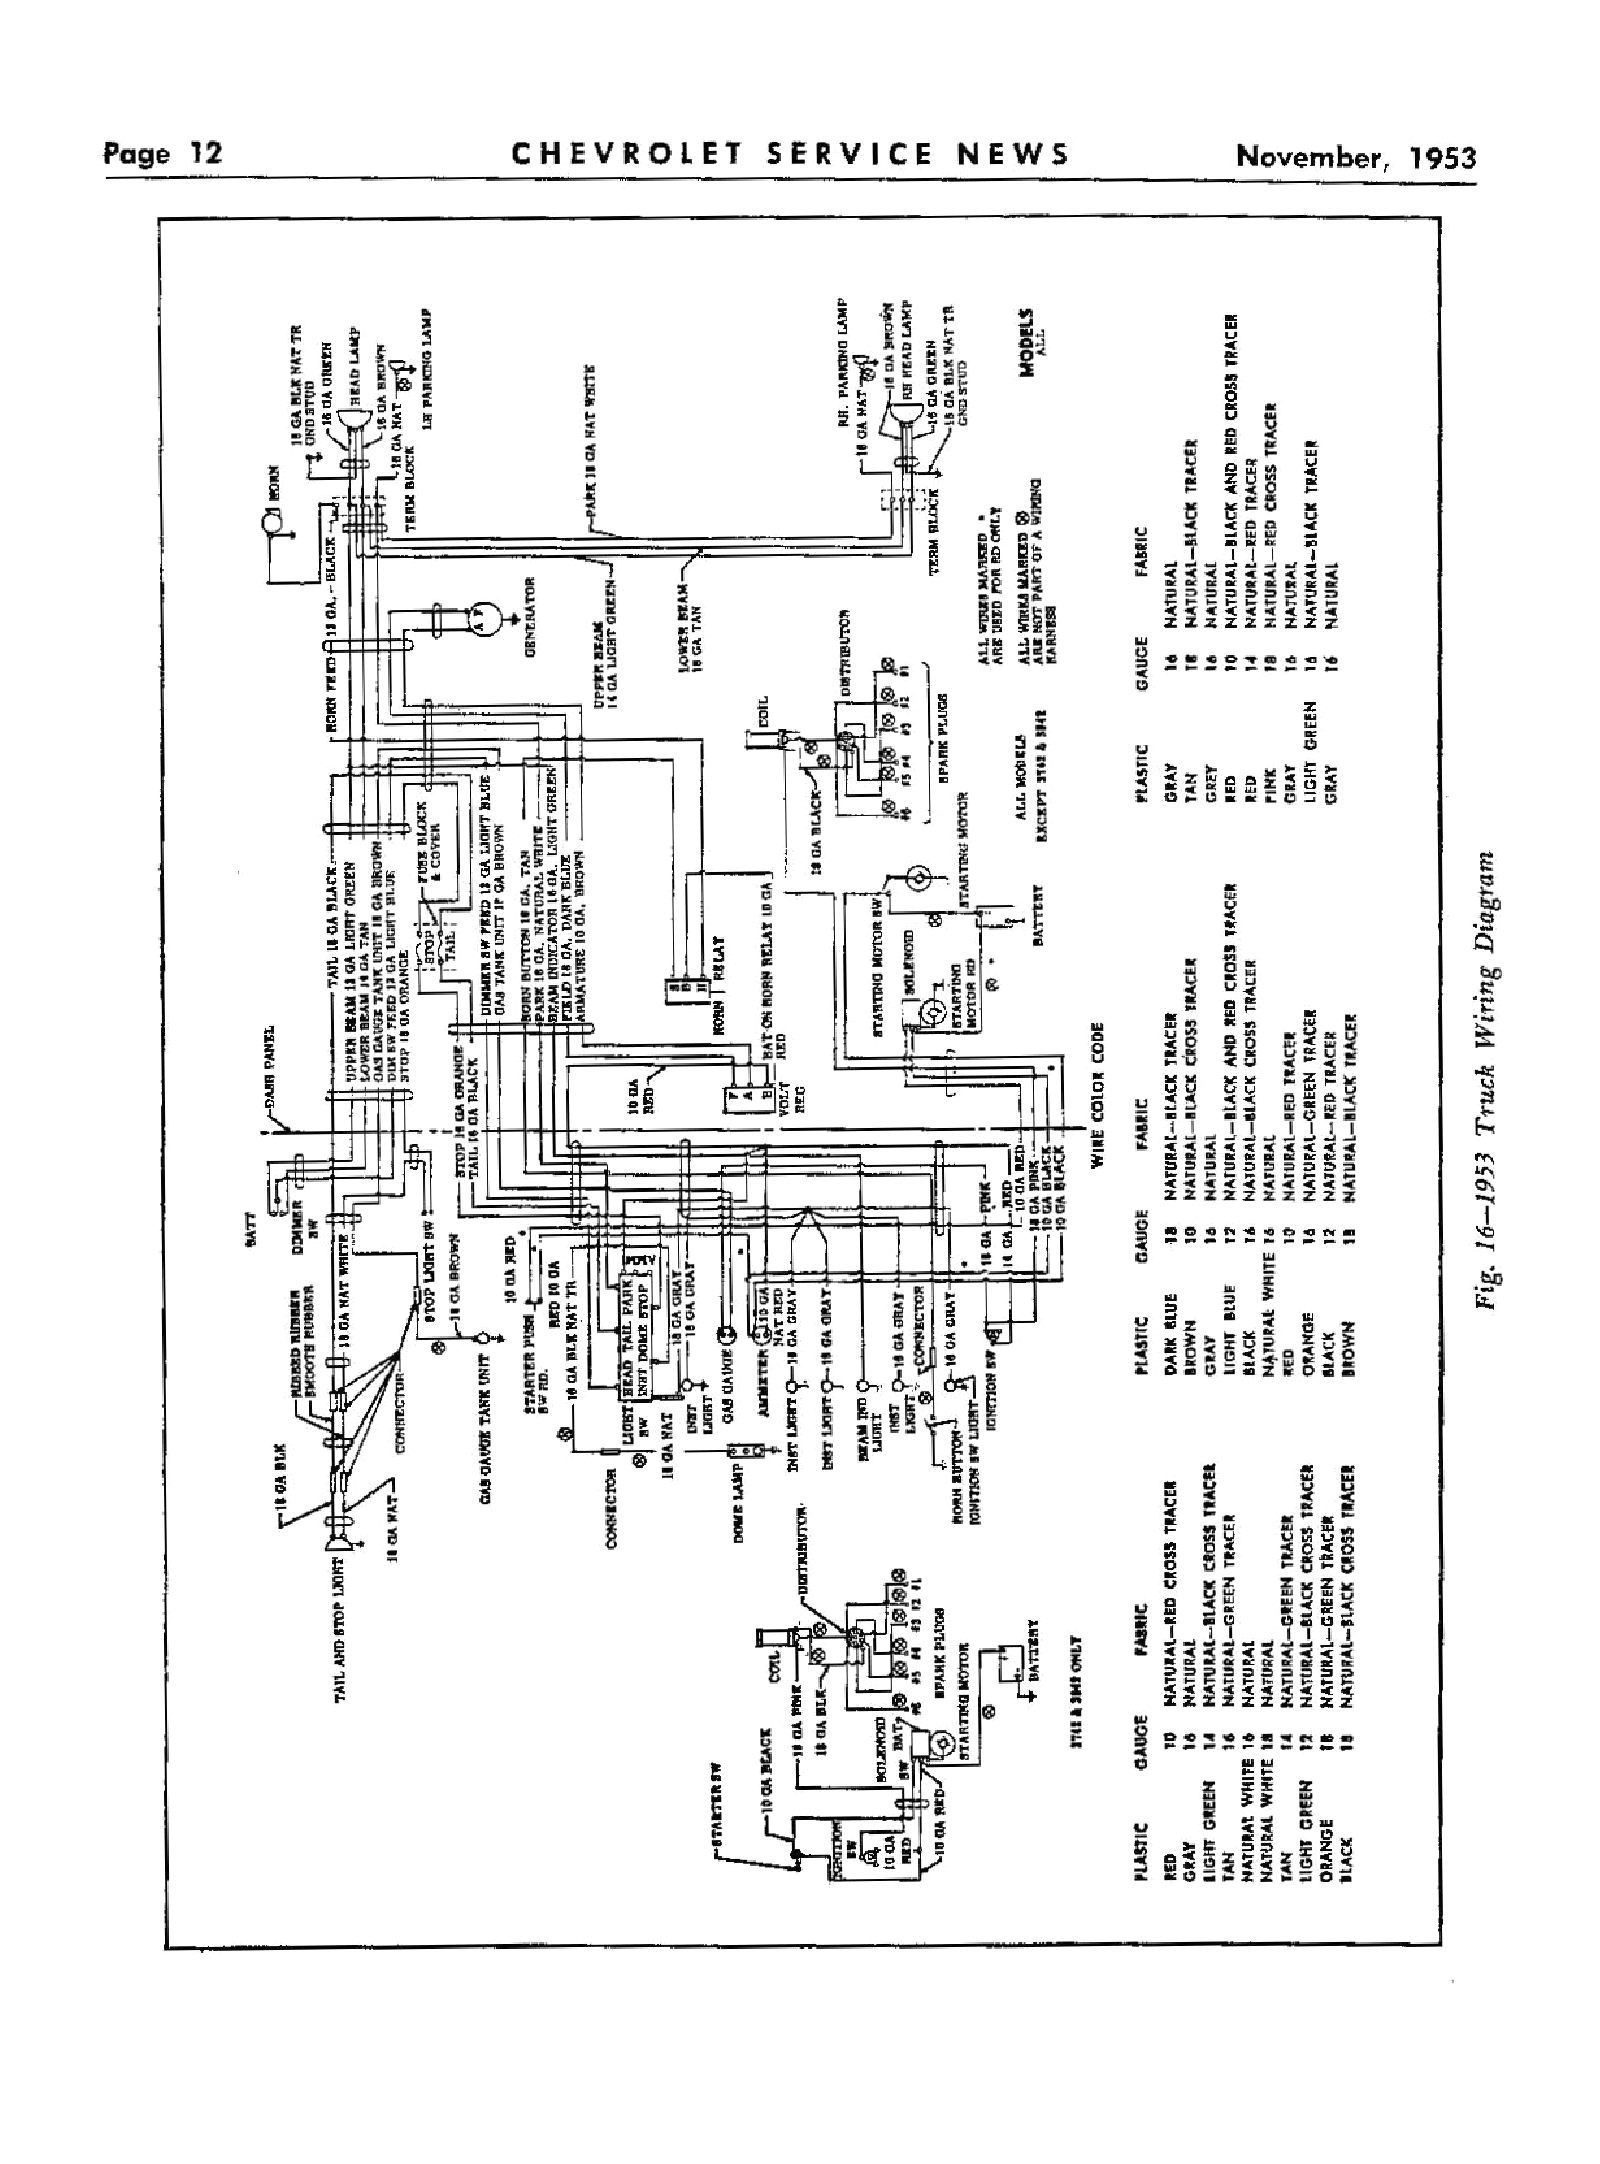 Wiring Harness For 1951 Chevy Truck : Ford pickup wiring diagram imageresizertool